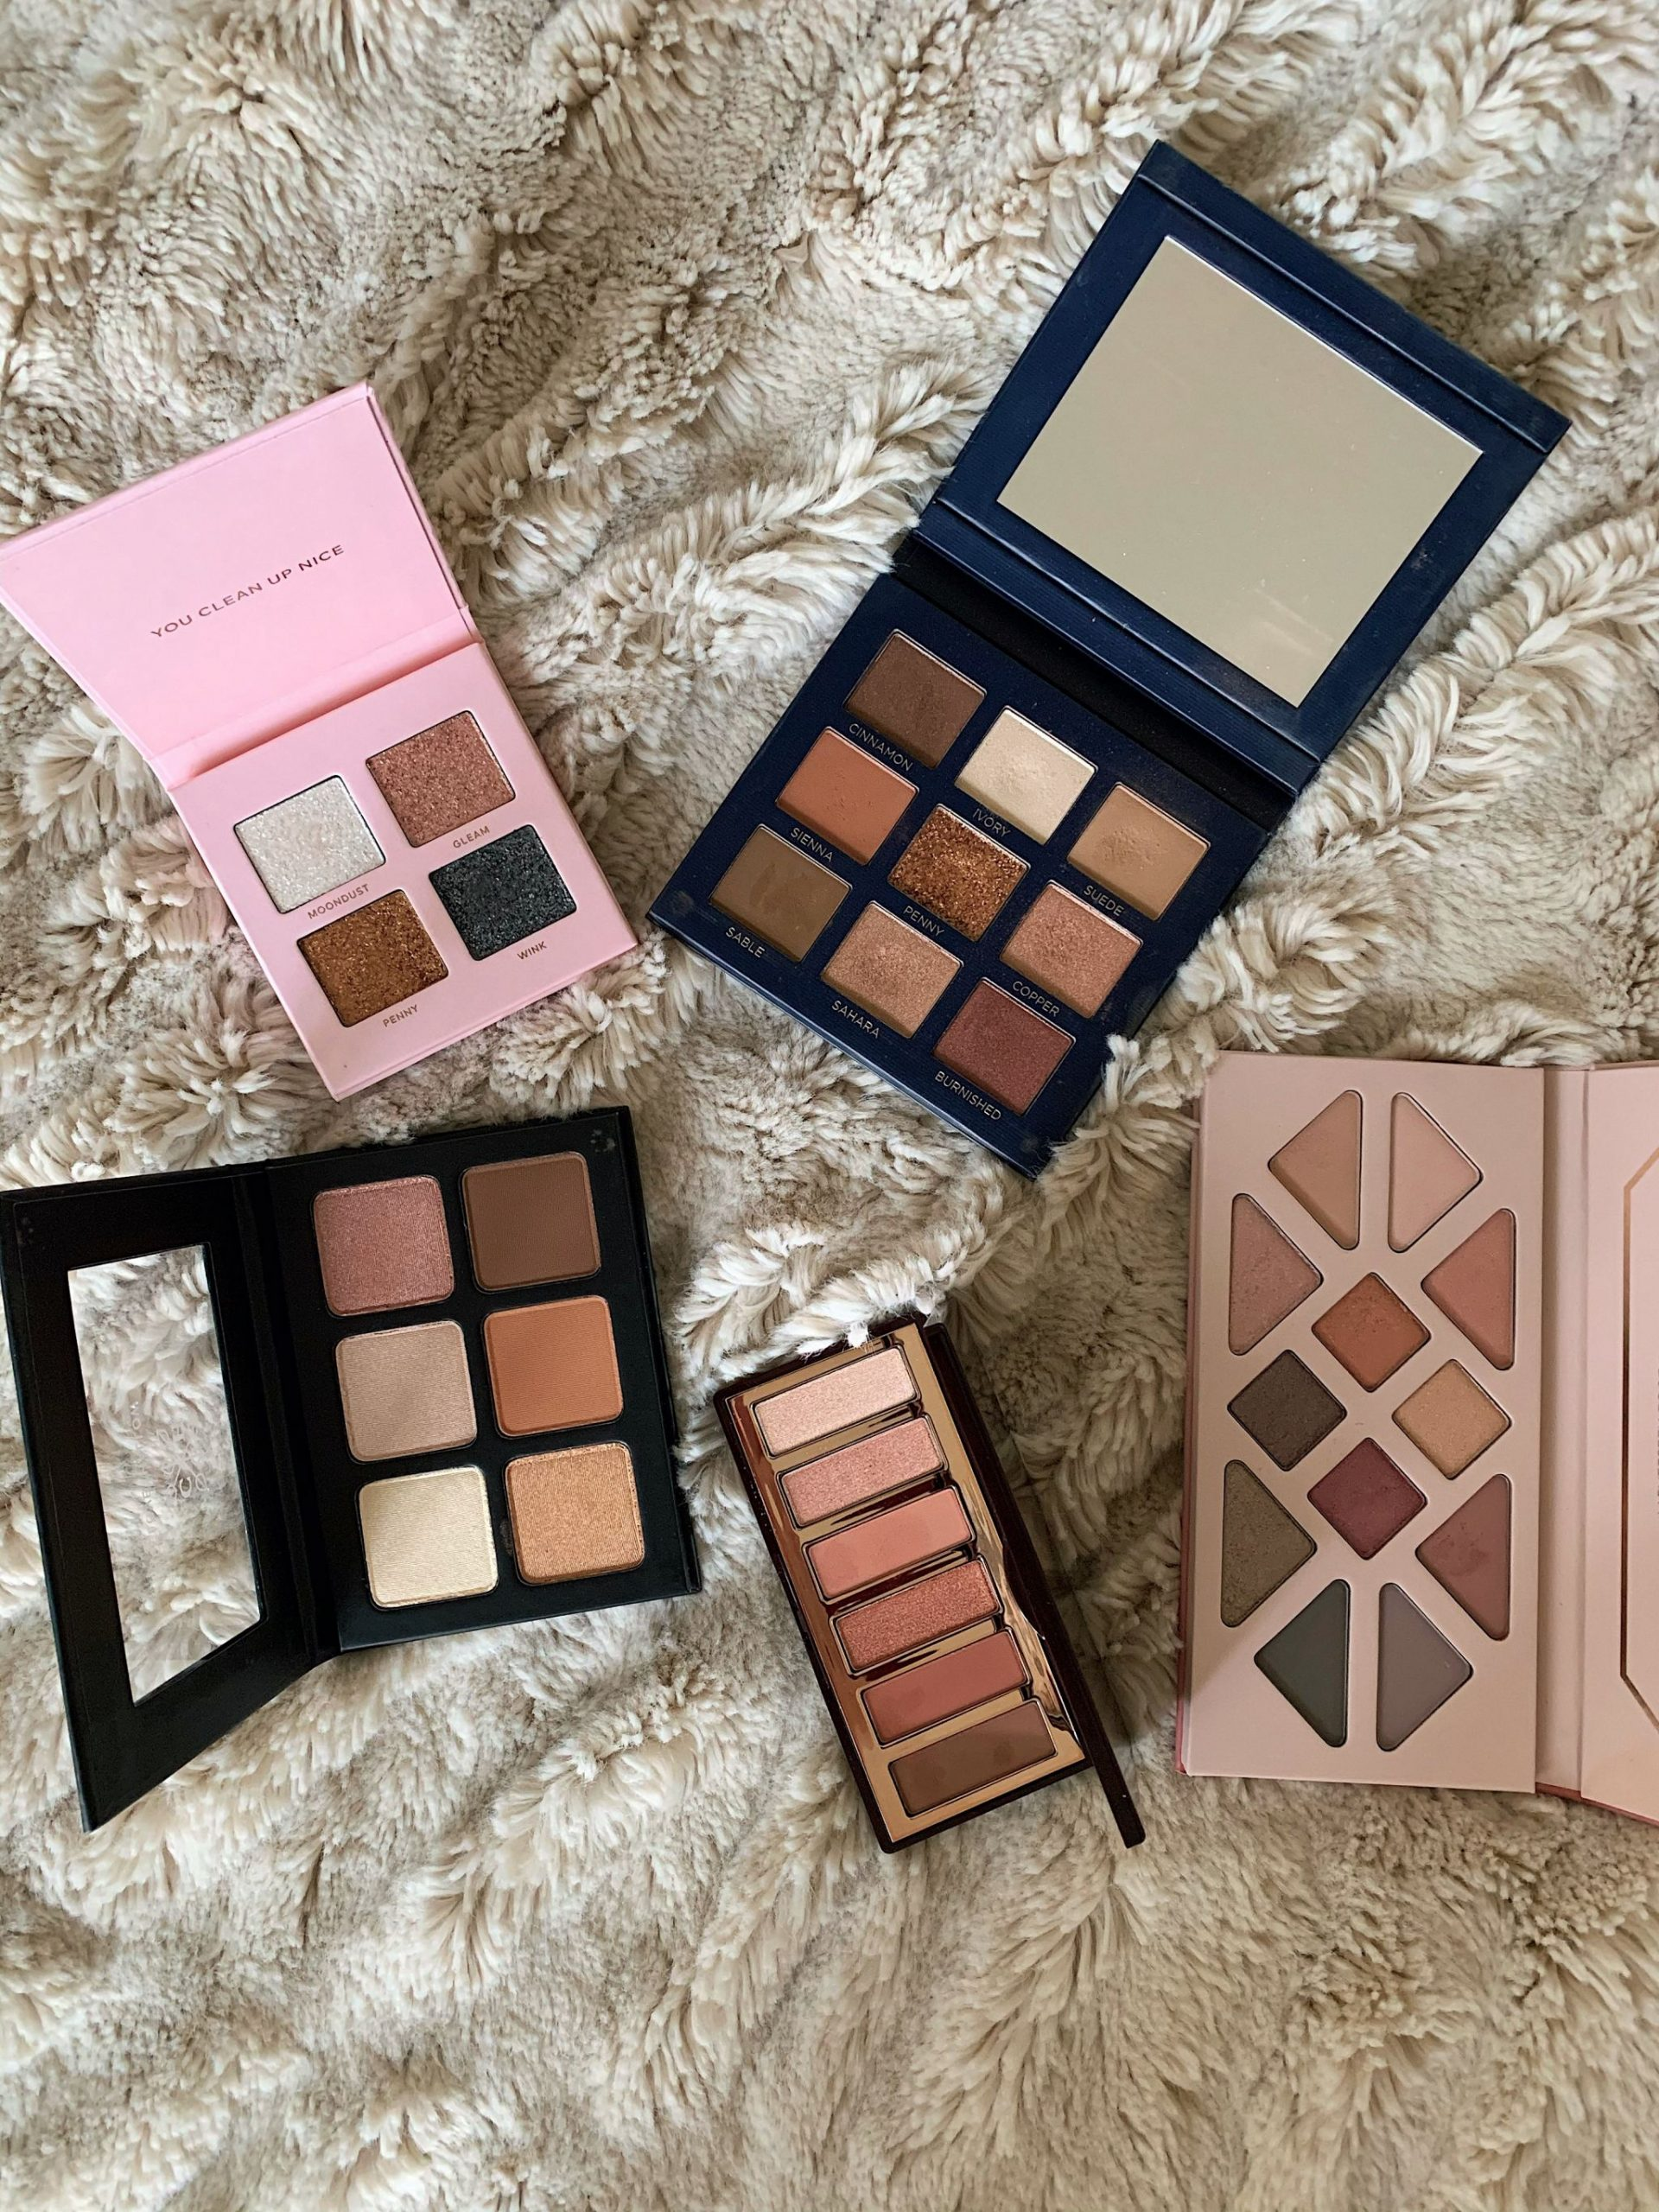 Bolt_Blogs_Makeup_Collection_Eyeshadow